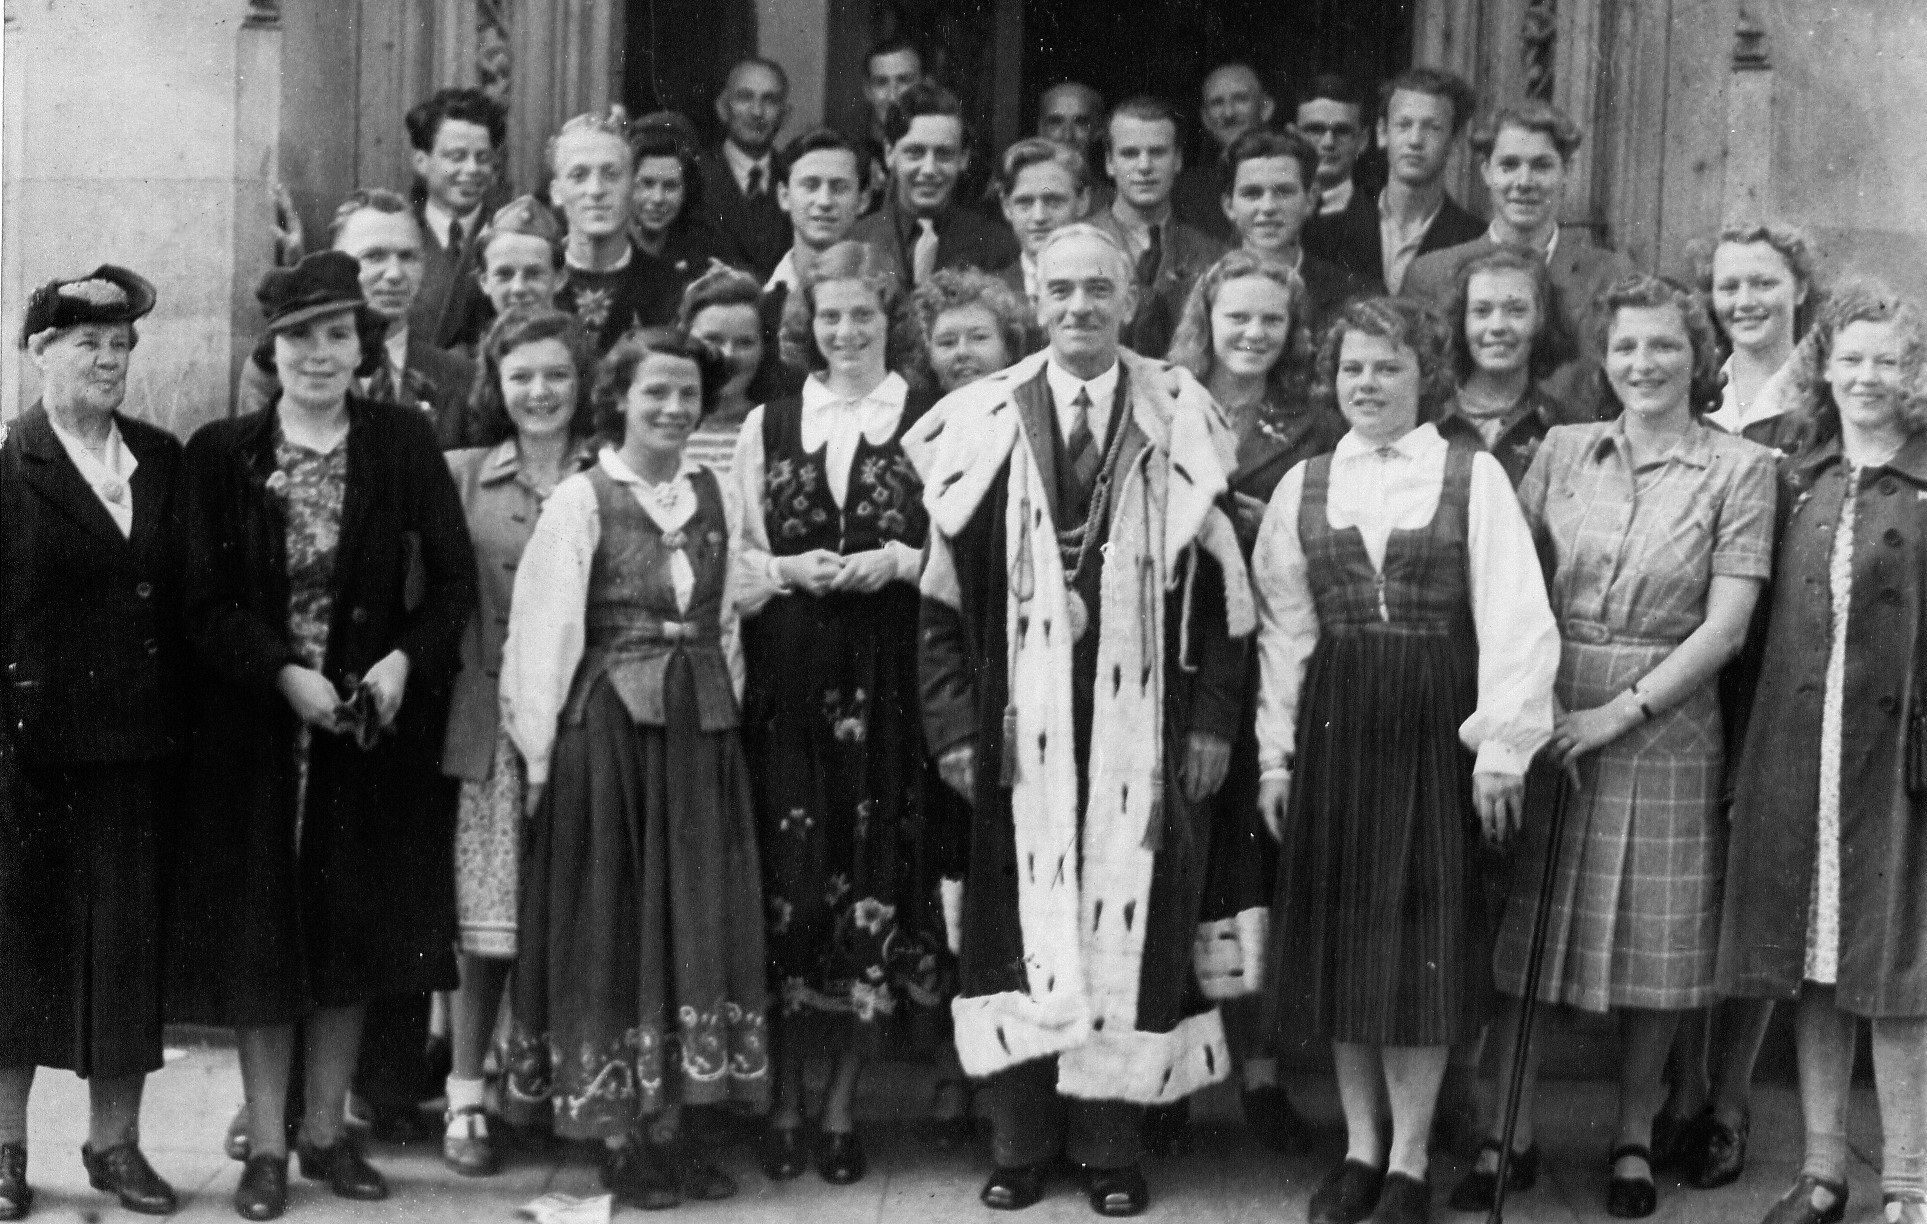 The first visit by the Norwegian group back in 1946.